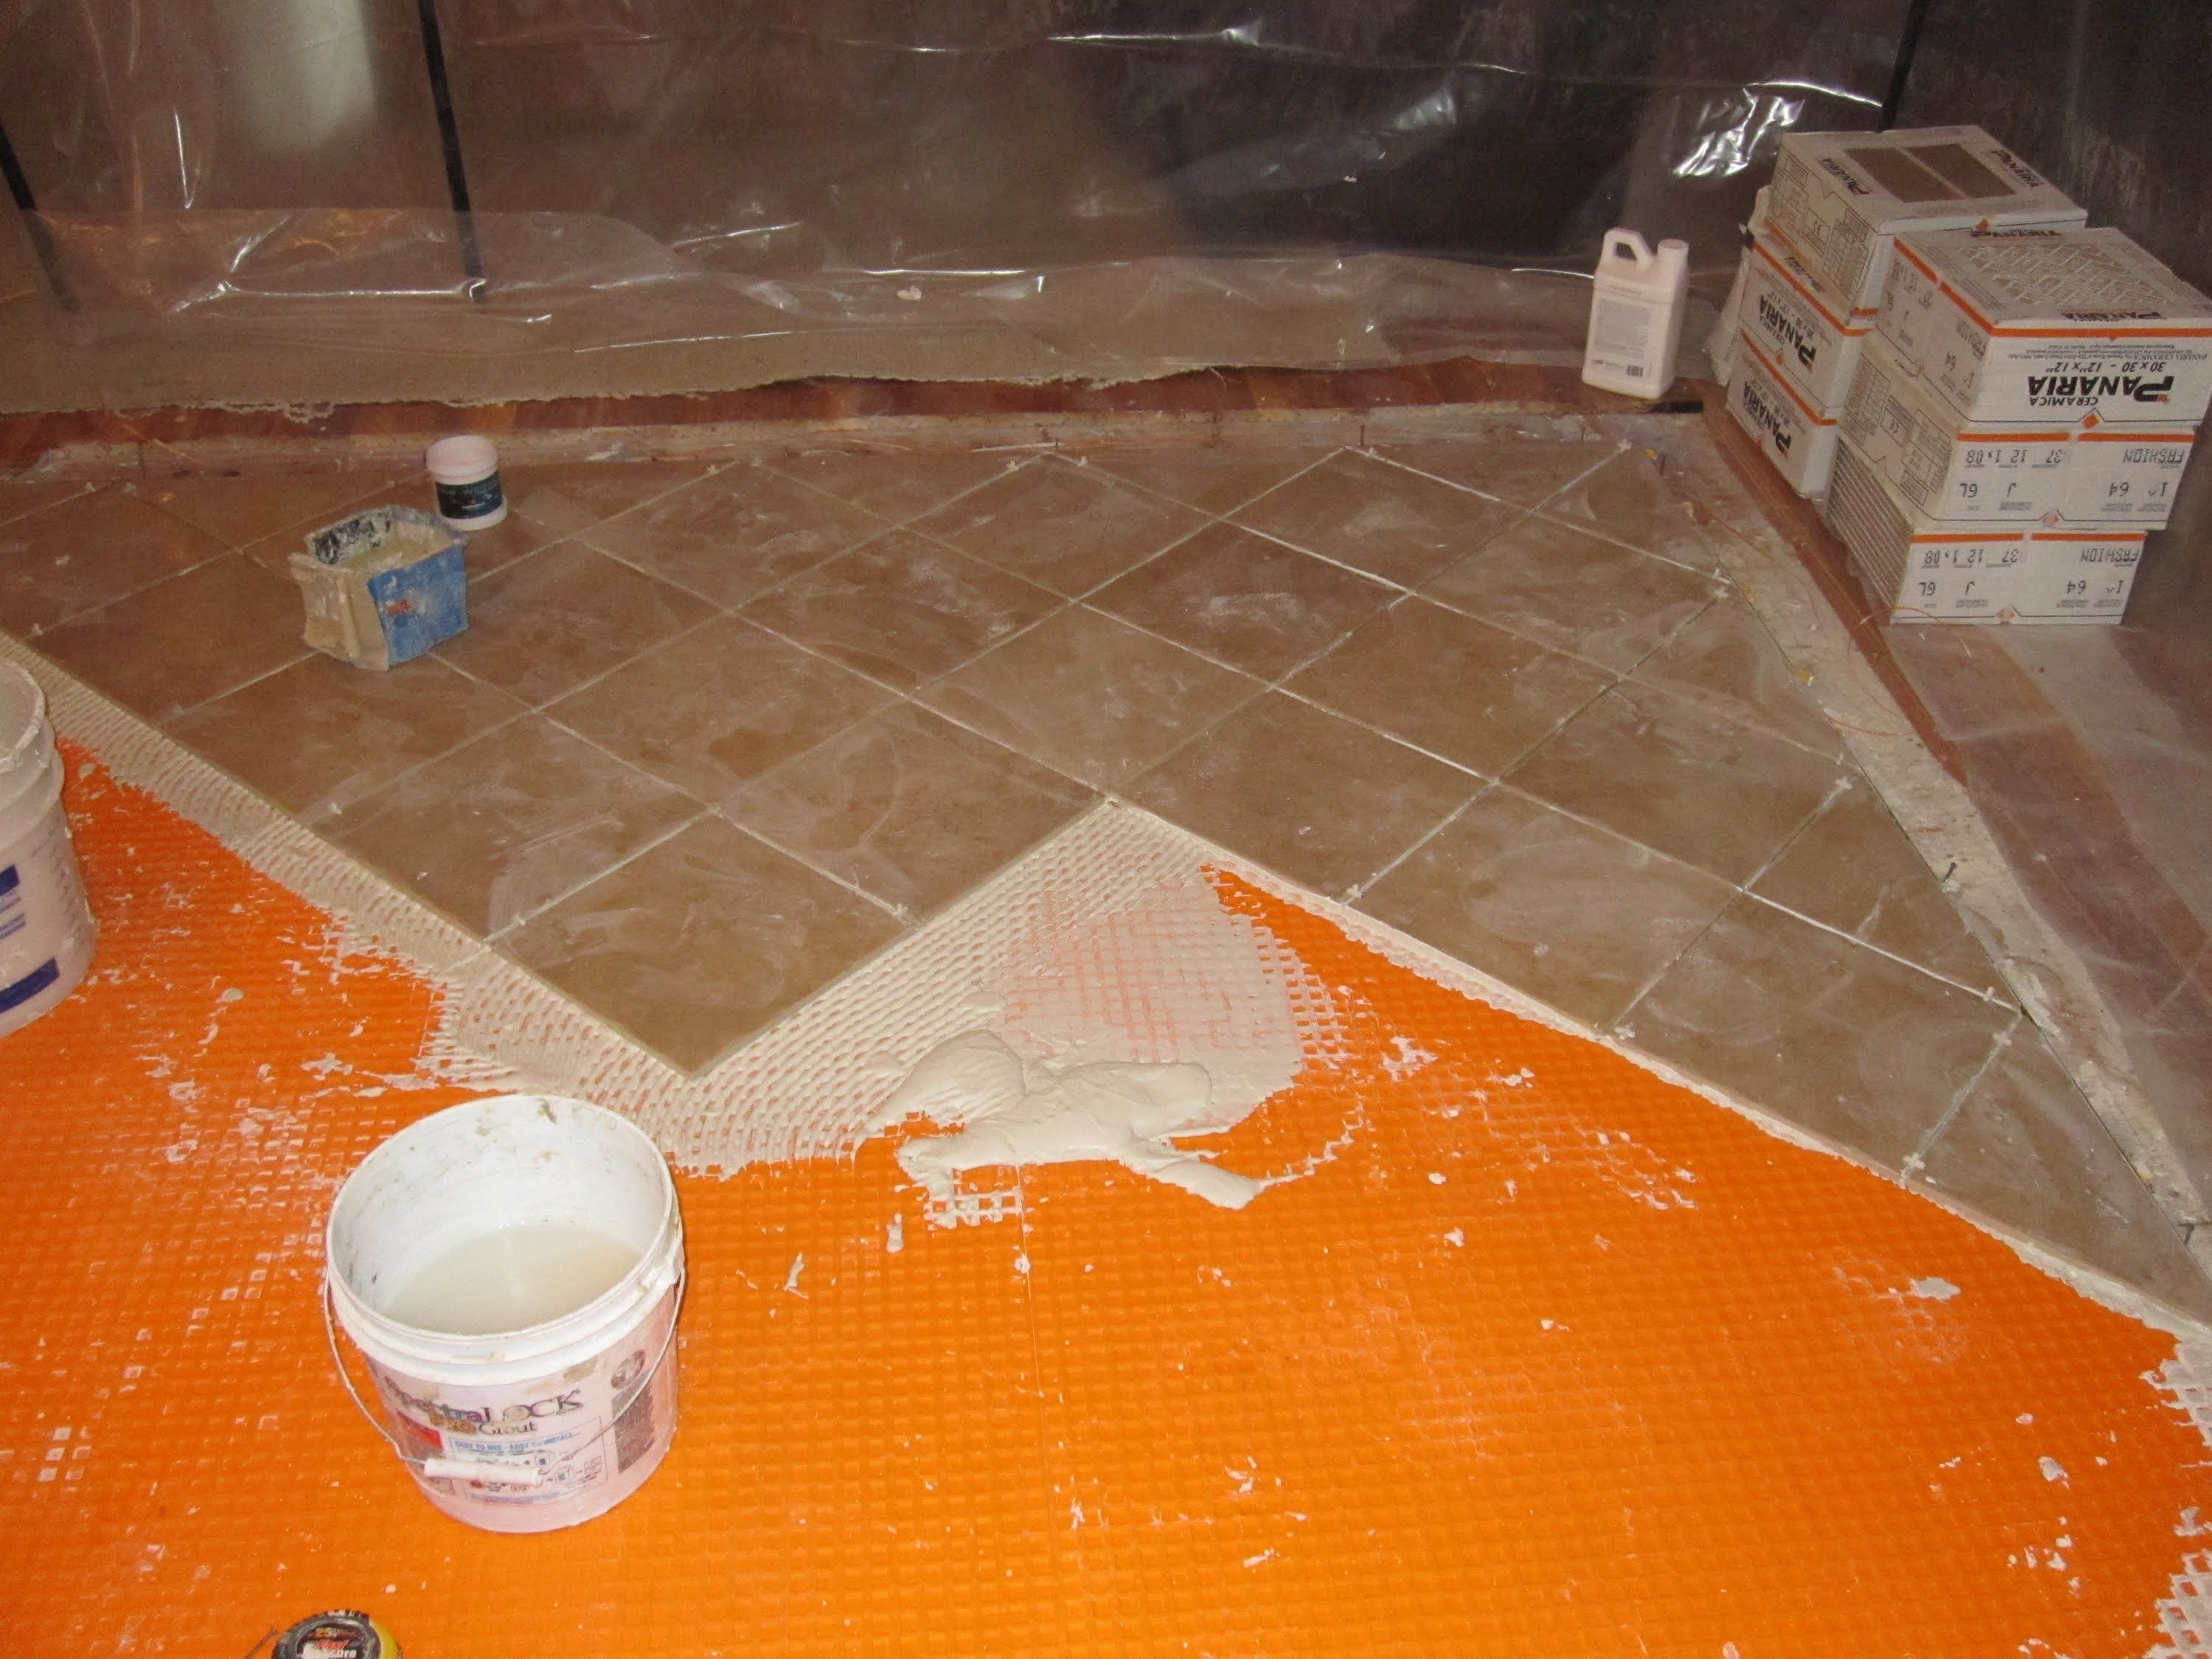 How To Install Schluter Ditra On Plywood Schluter Ditra Underlayment Is An Excellent Choice For A Tile Tile Floor Diy Tile Installation Radiant Heating System